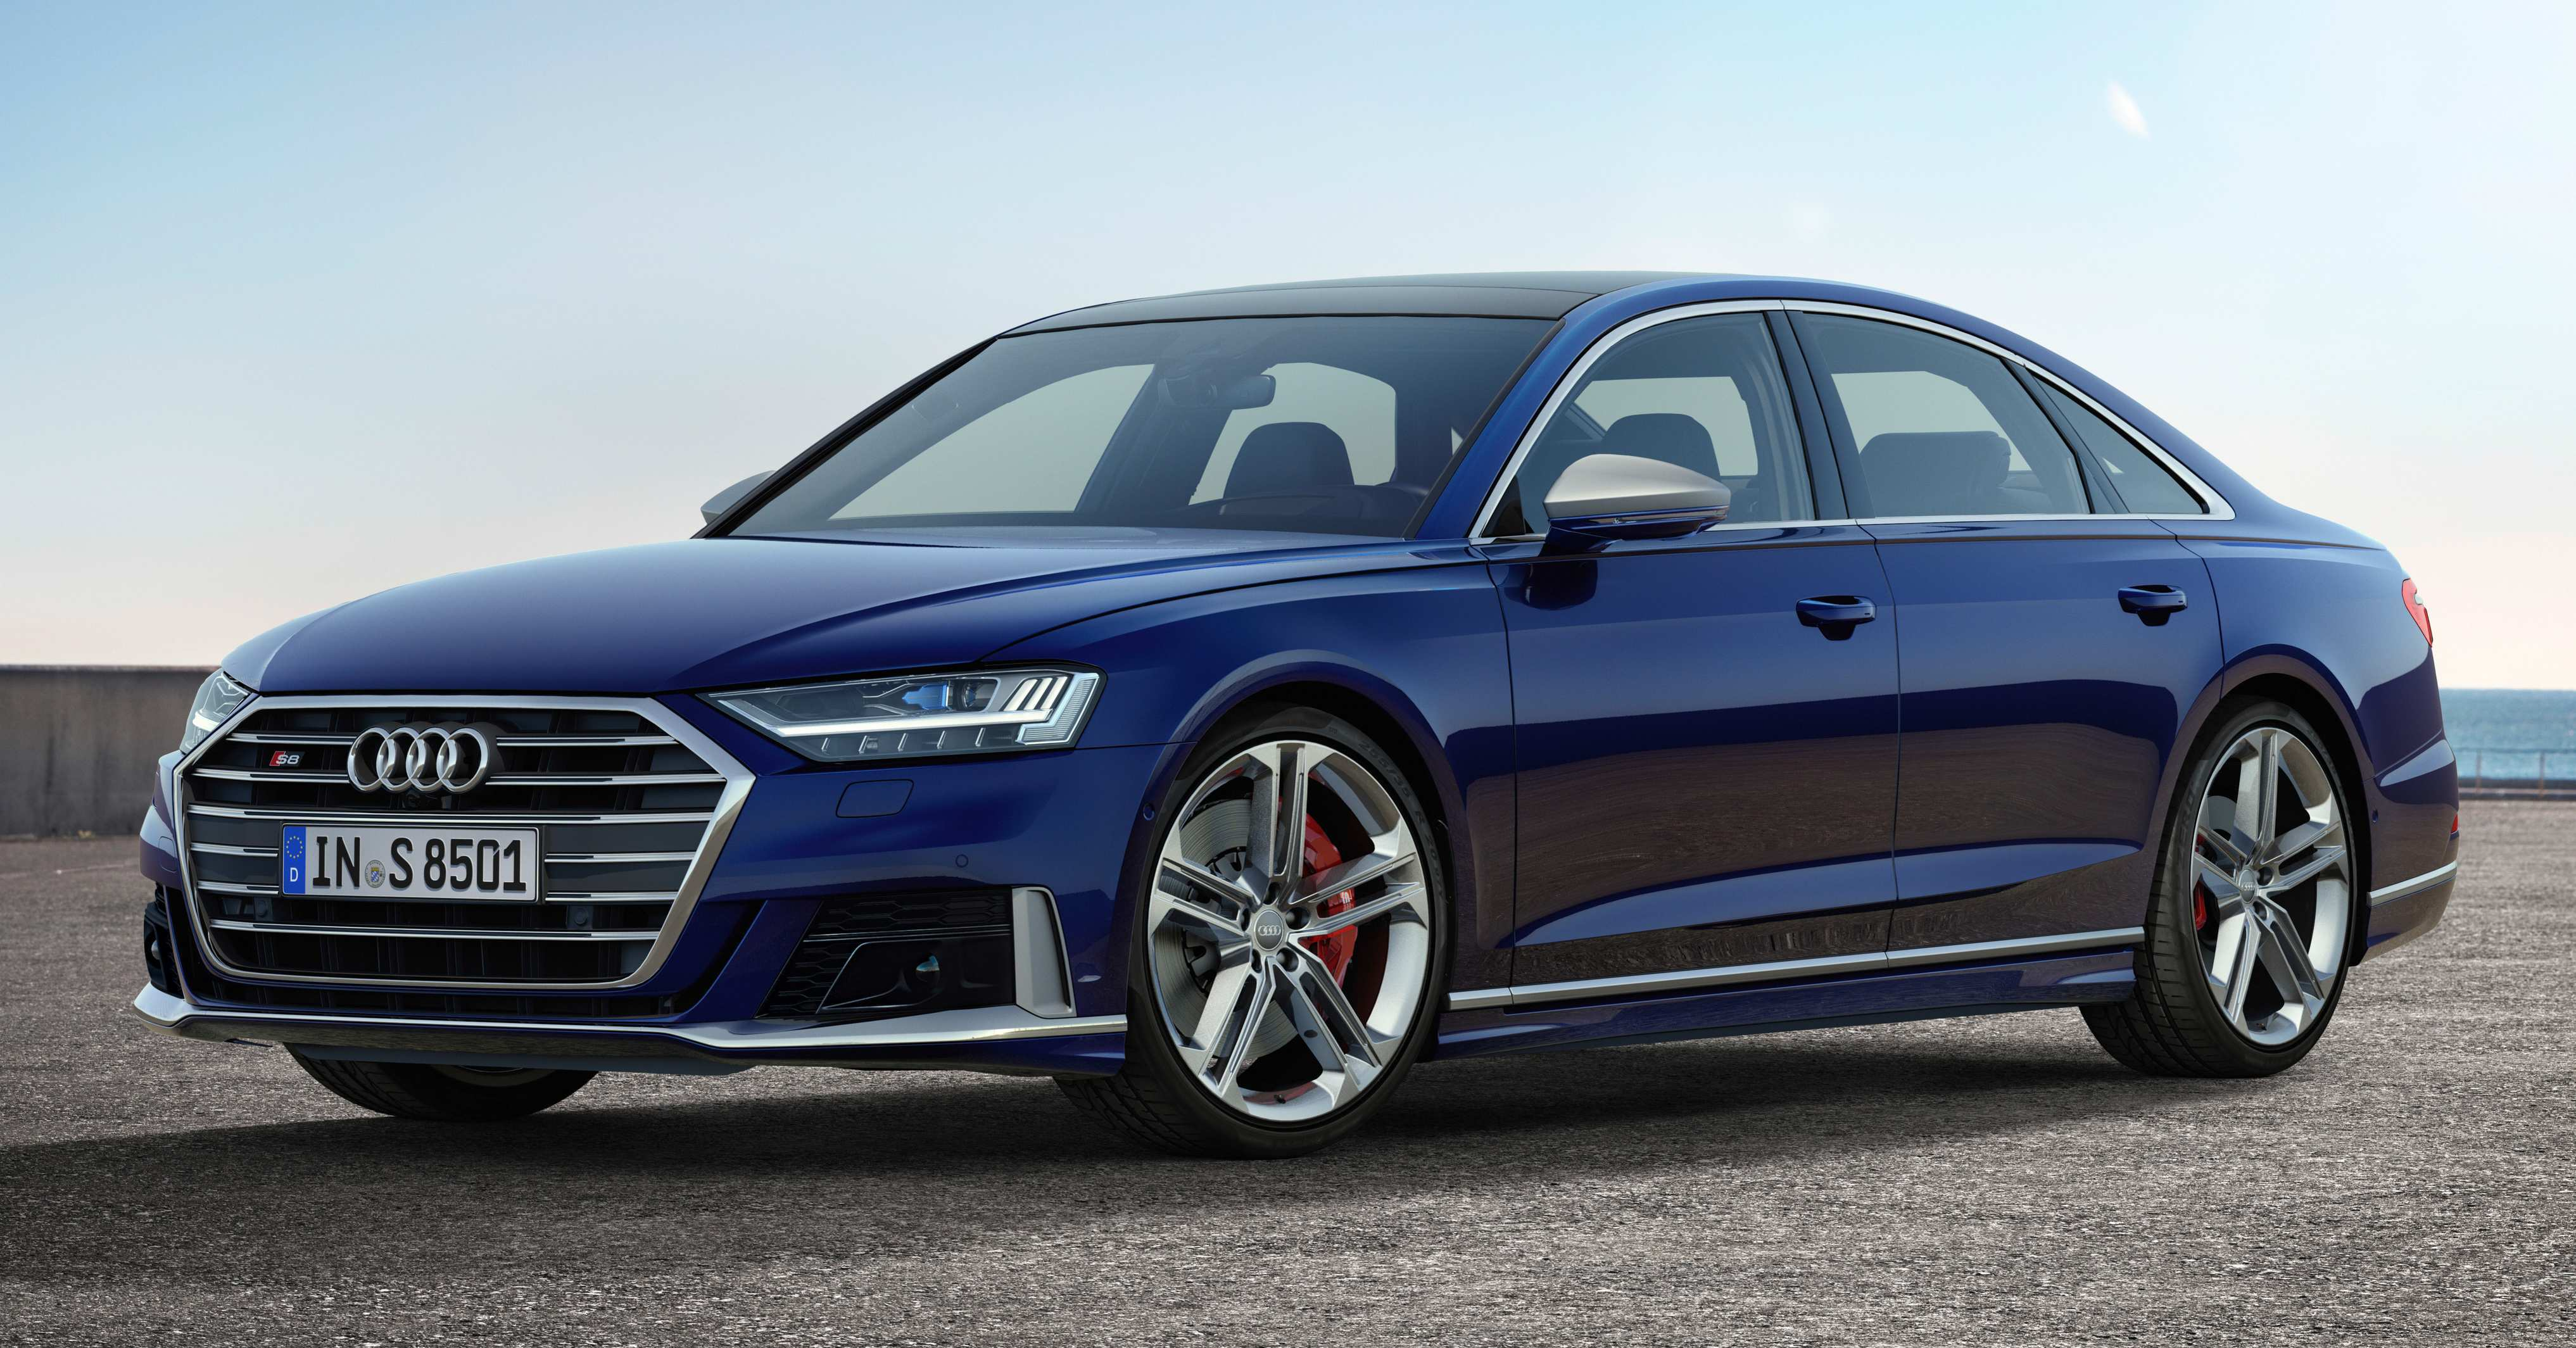 63 All New Audi News 2020 Exterior And Interior